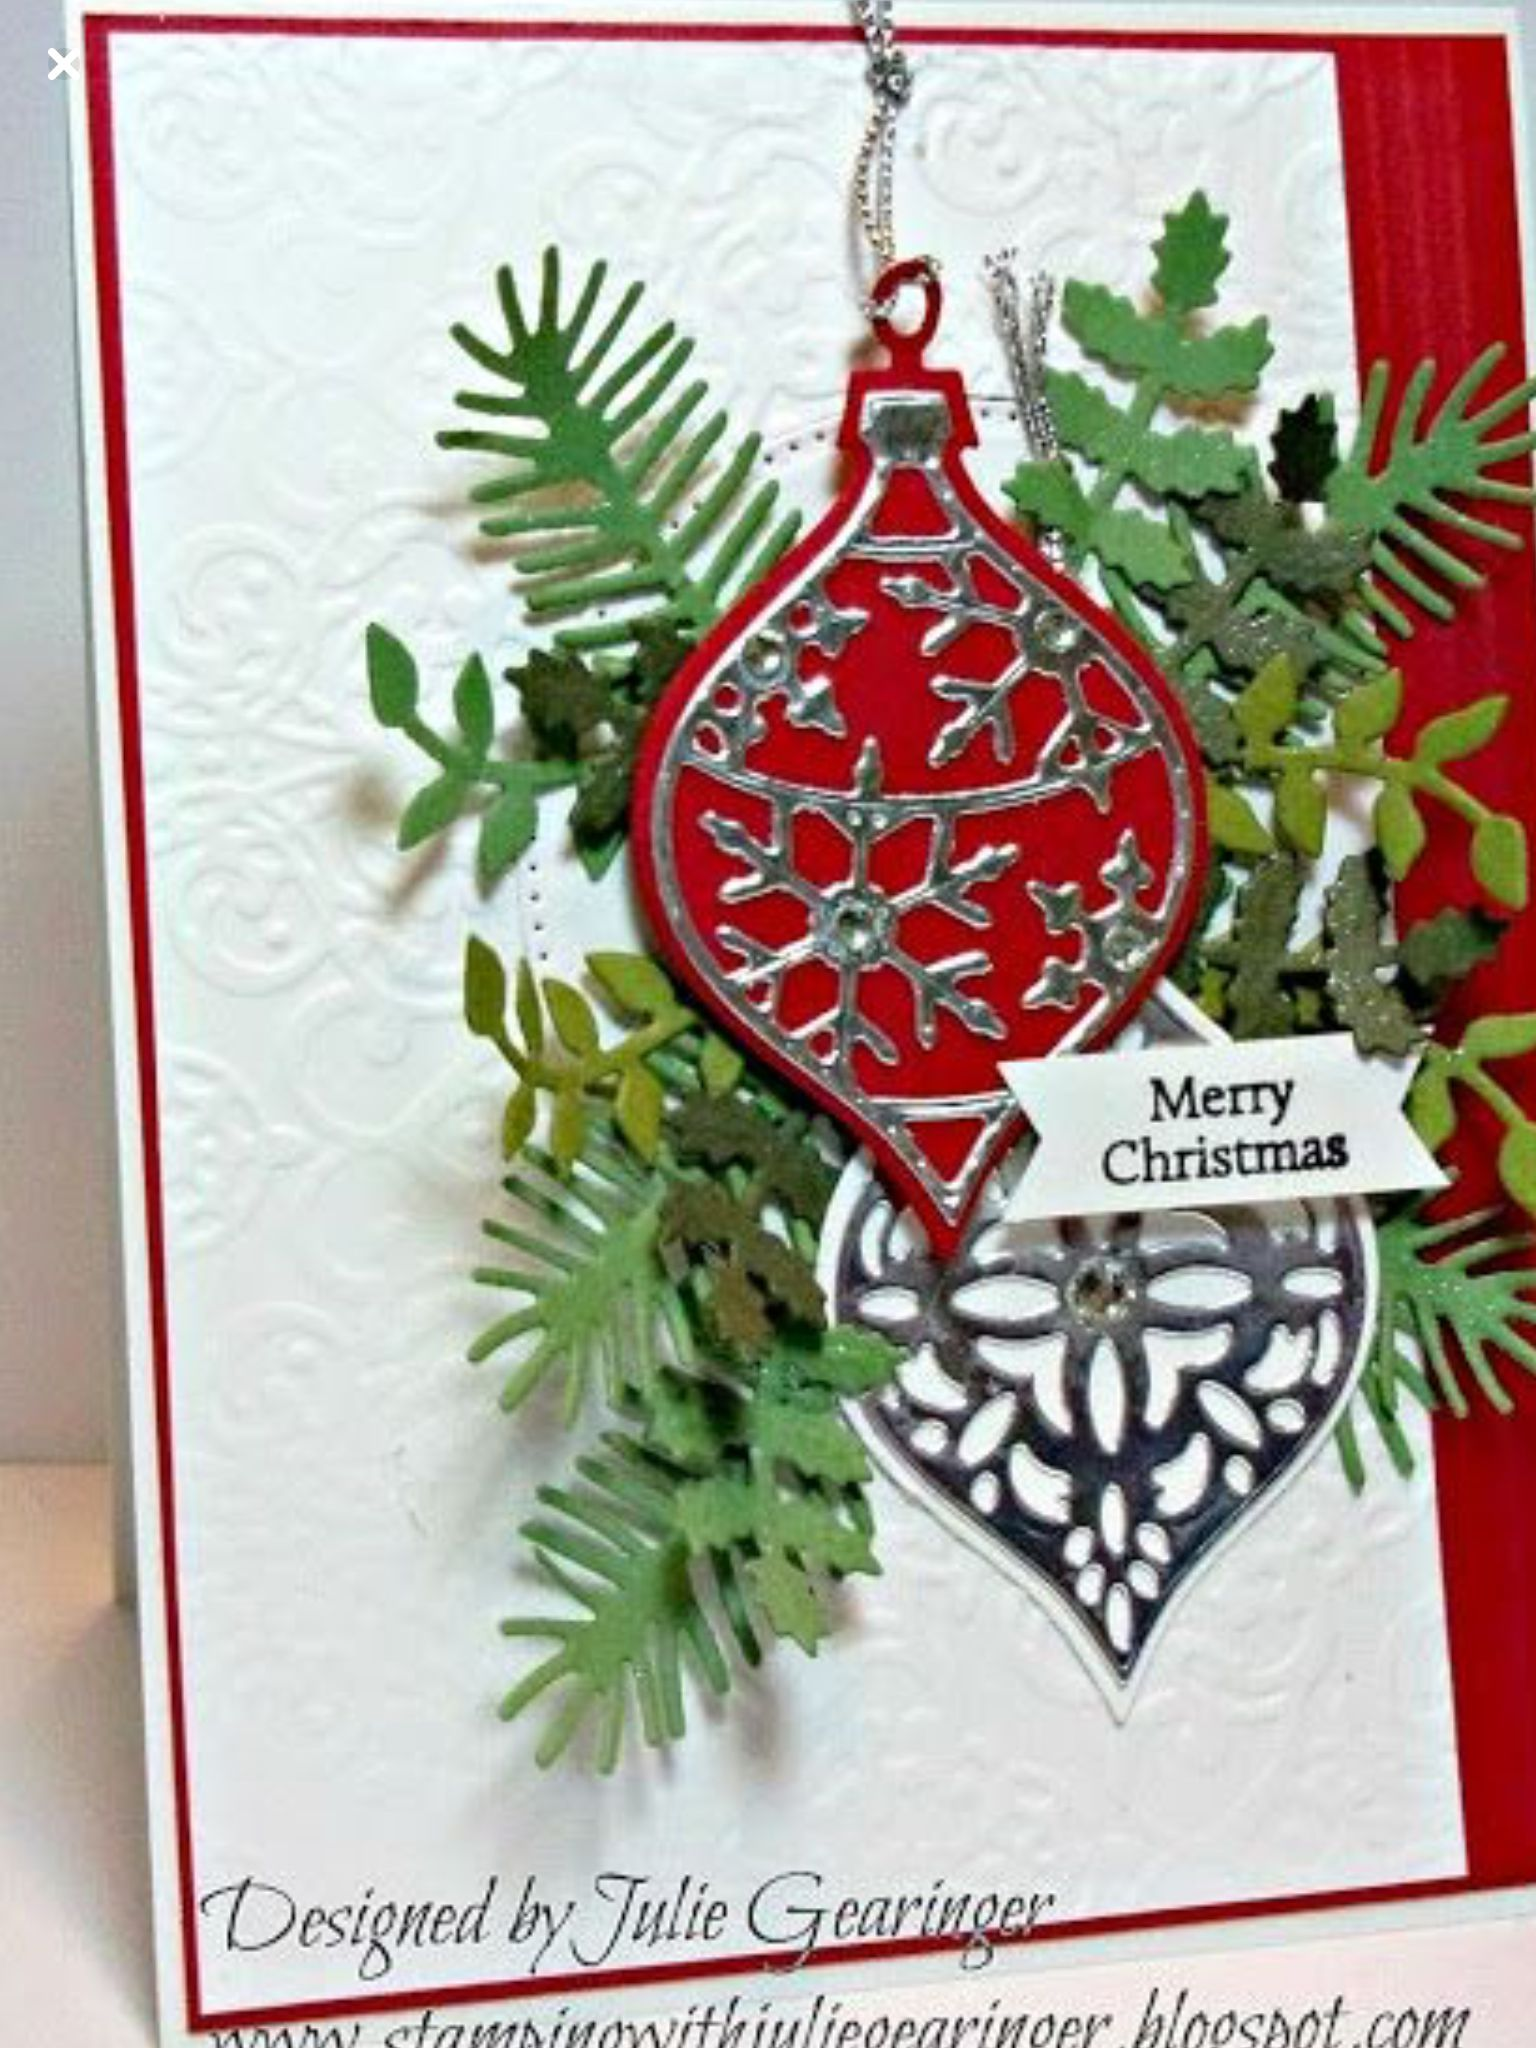 Pin by Mary E Sasser on Christmas Cards | Pinterest | Christmas ...